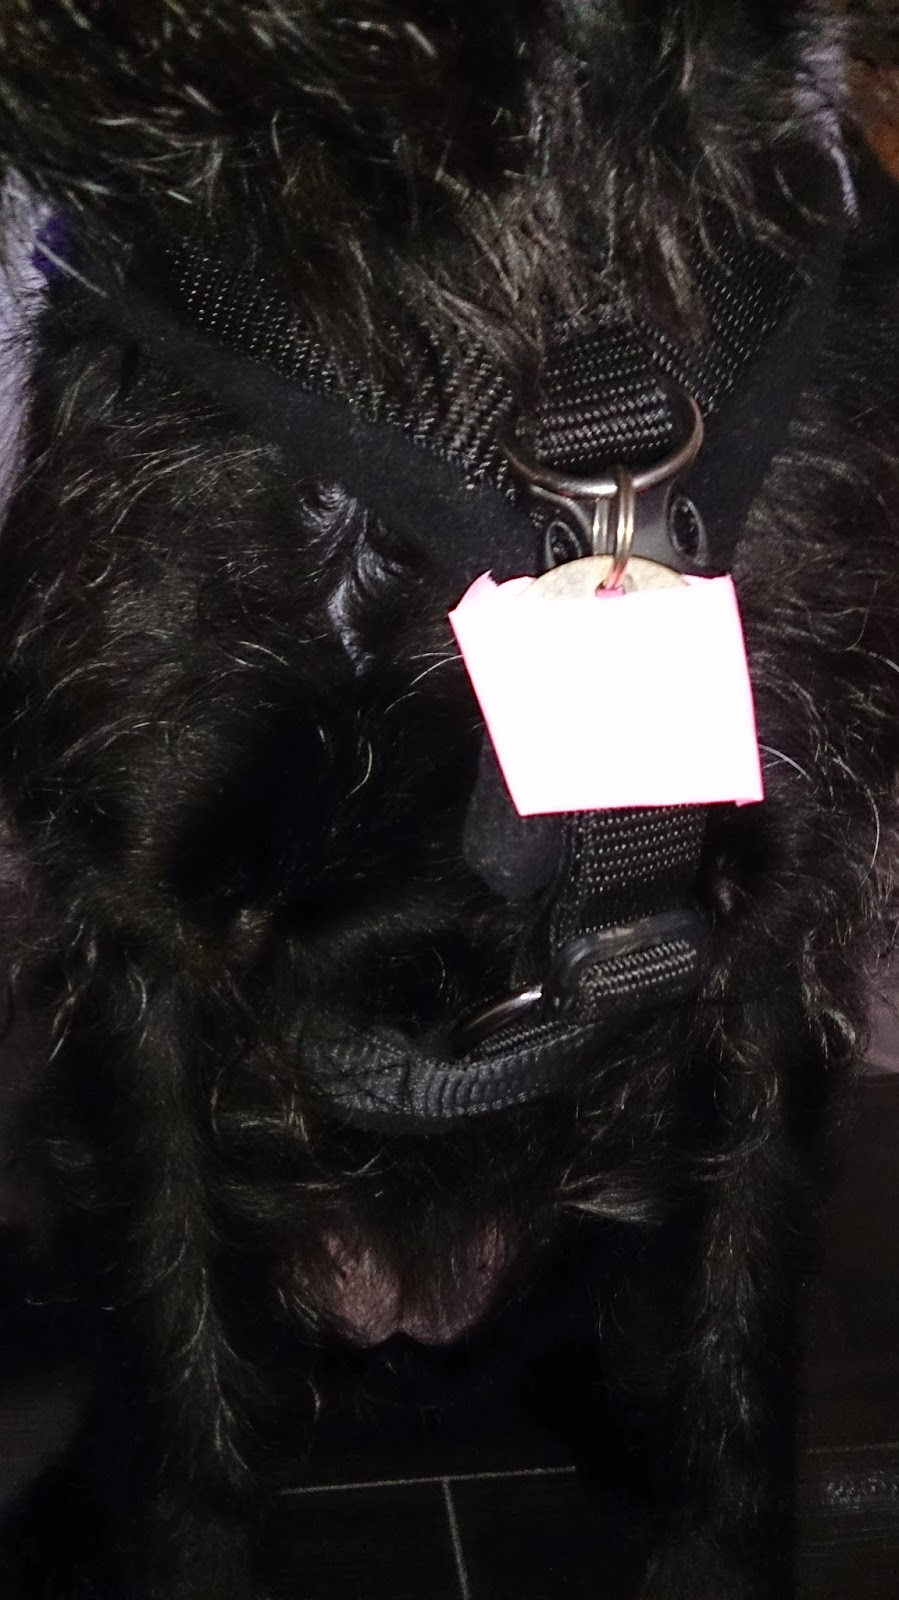 dog games shop ltd perfect fit harness dogs cats pigs tri-paw collar lead fleece lined comfortable